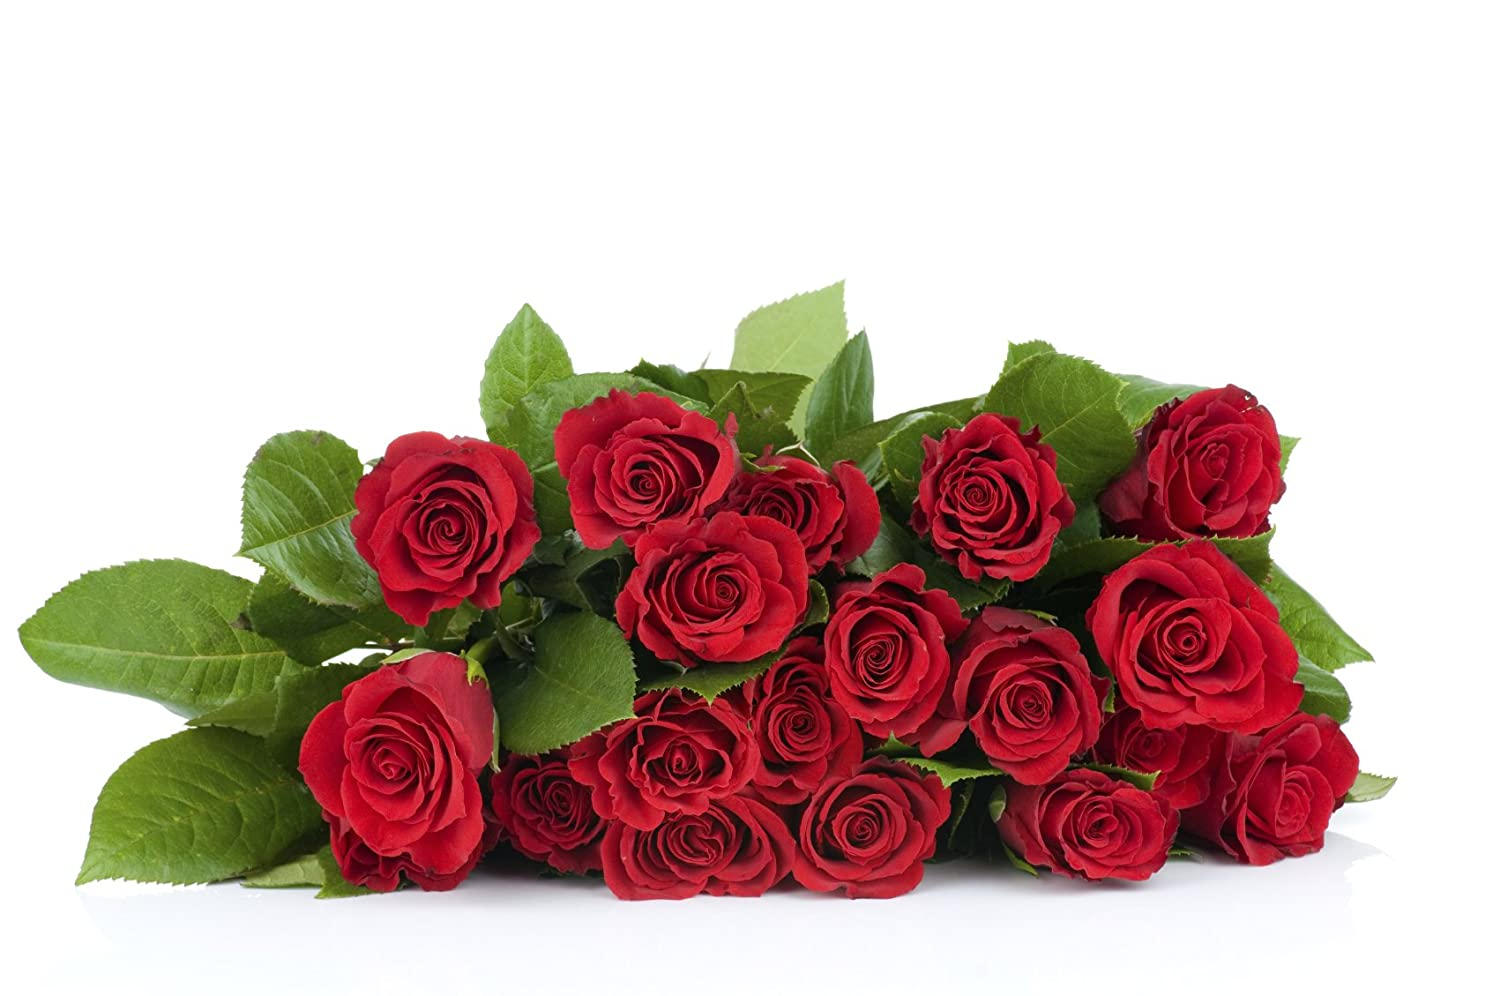 amazoncom 24 long stem red roses hand tied bouquet no vase everything else